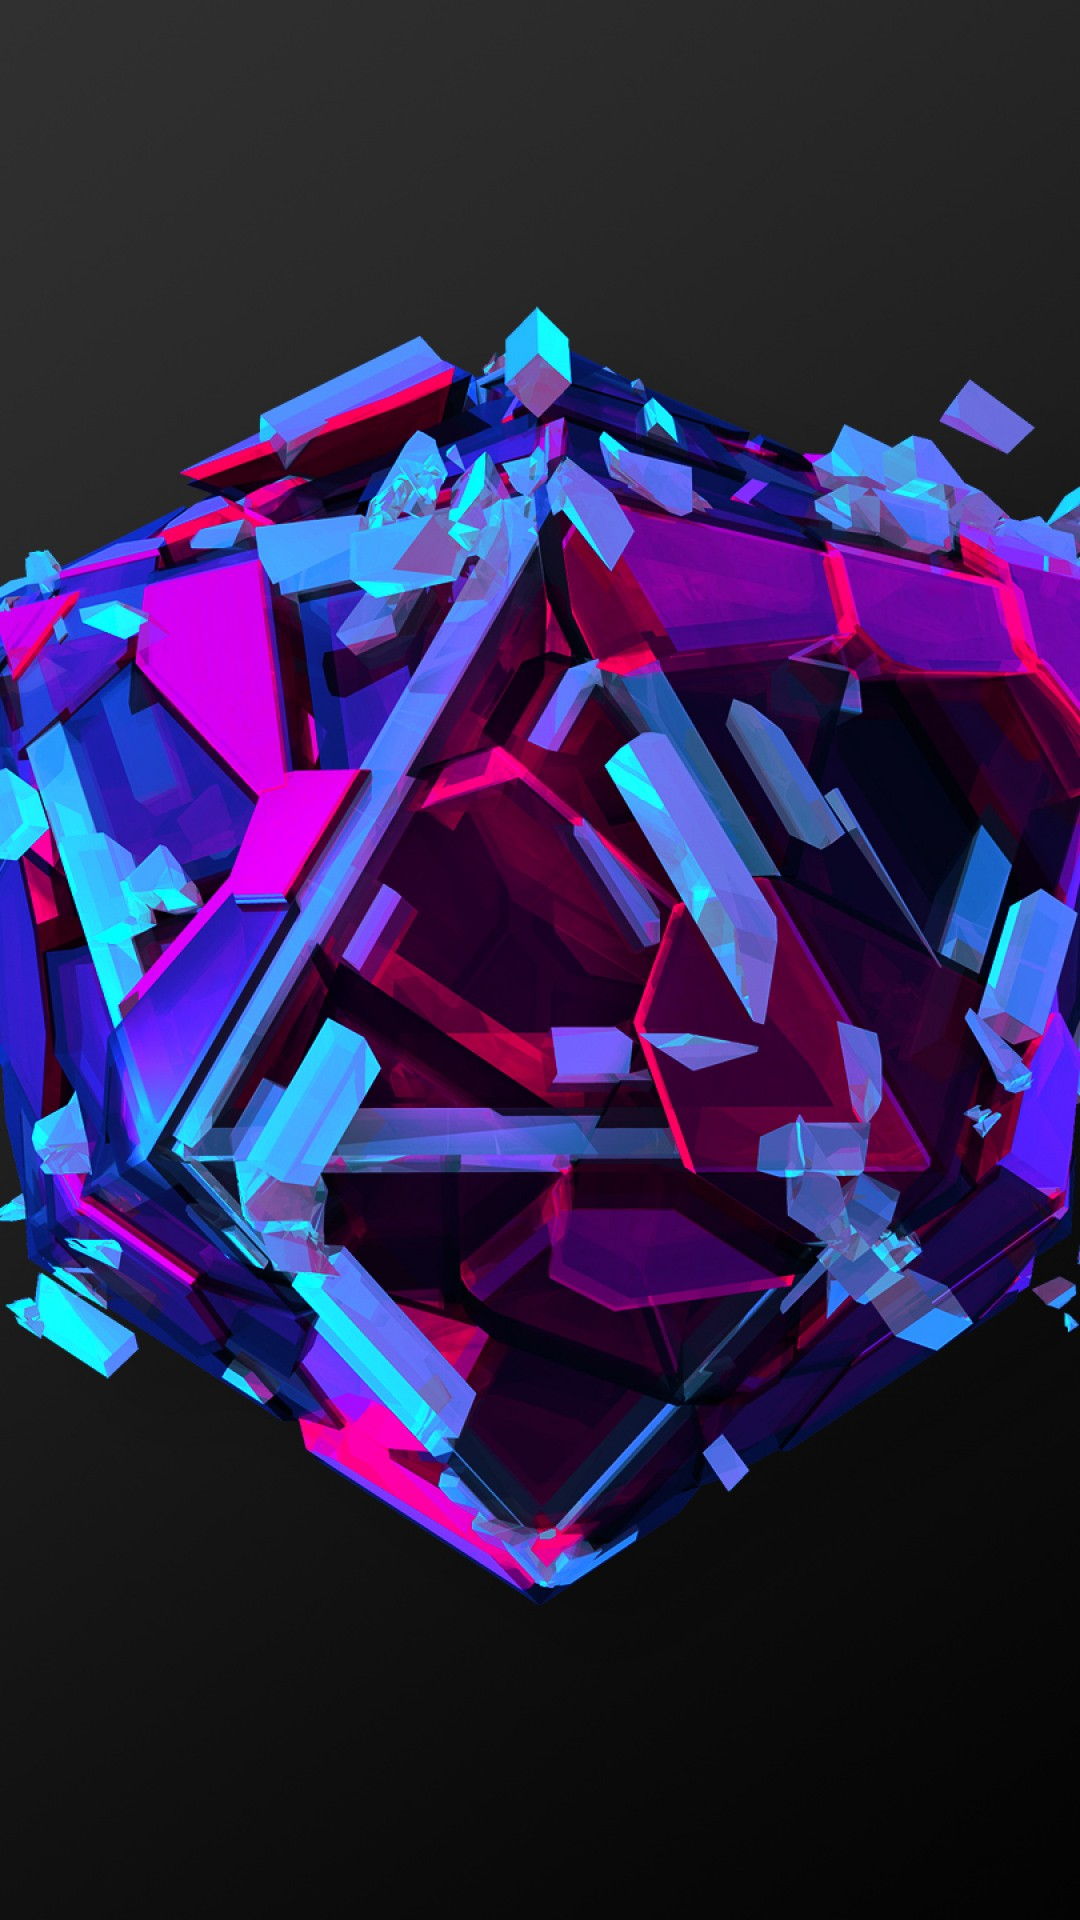 Wallpaper triangles, 3D, HD, Abstract #16365